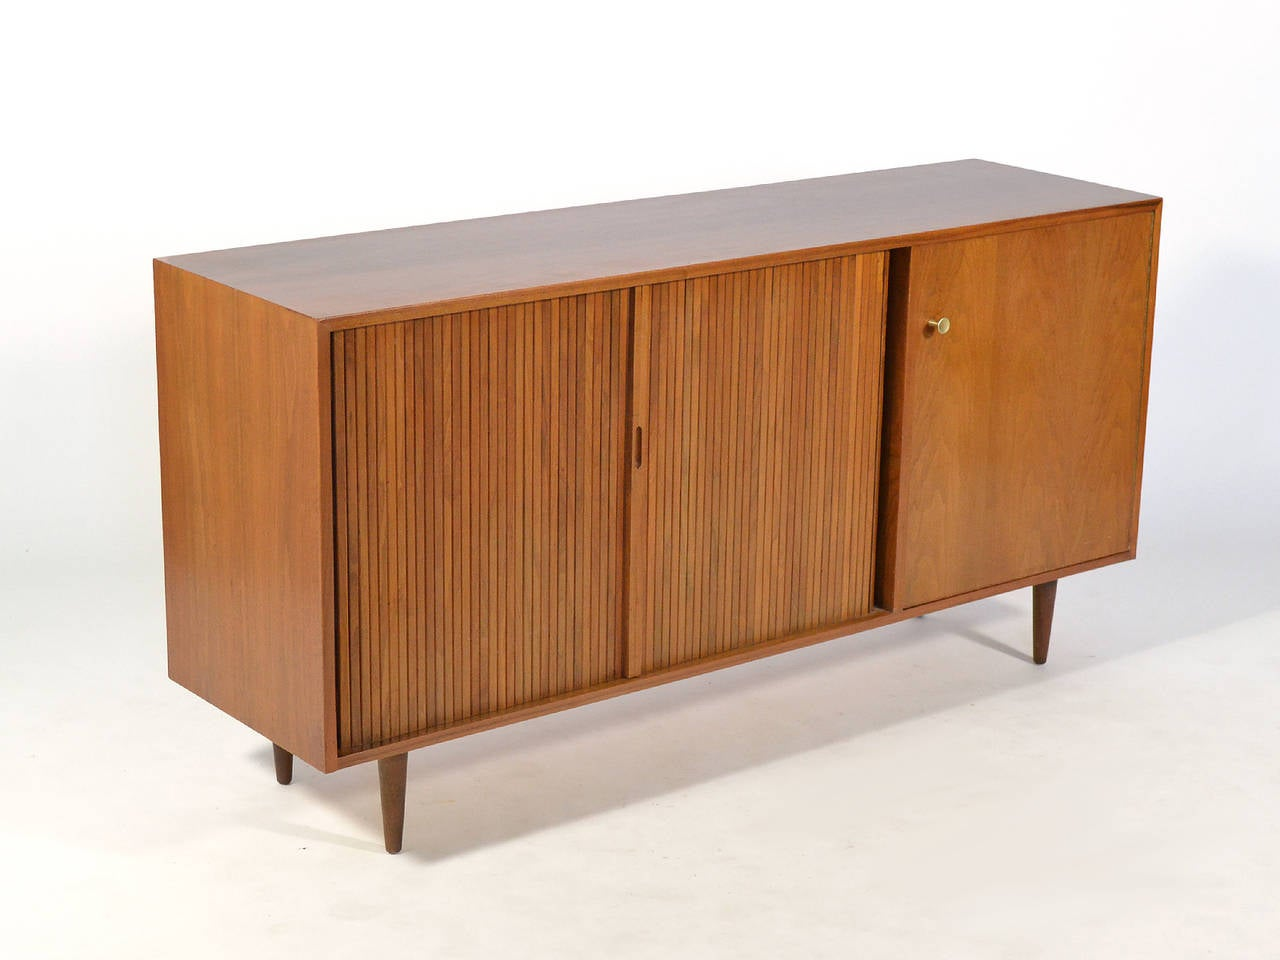 Mid-20th Century Milo Baughman Credenza by Glenn of California For Sale